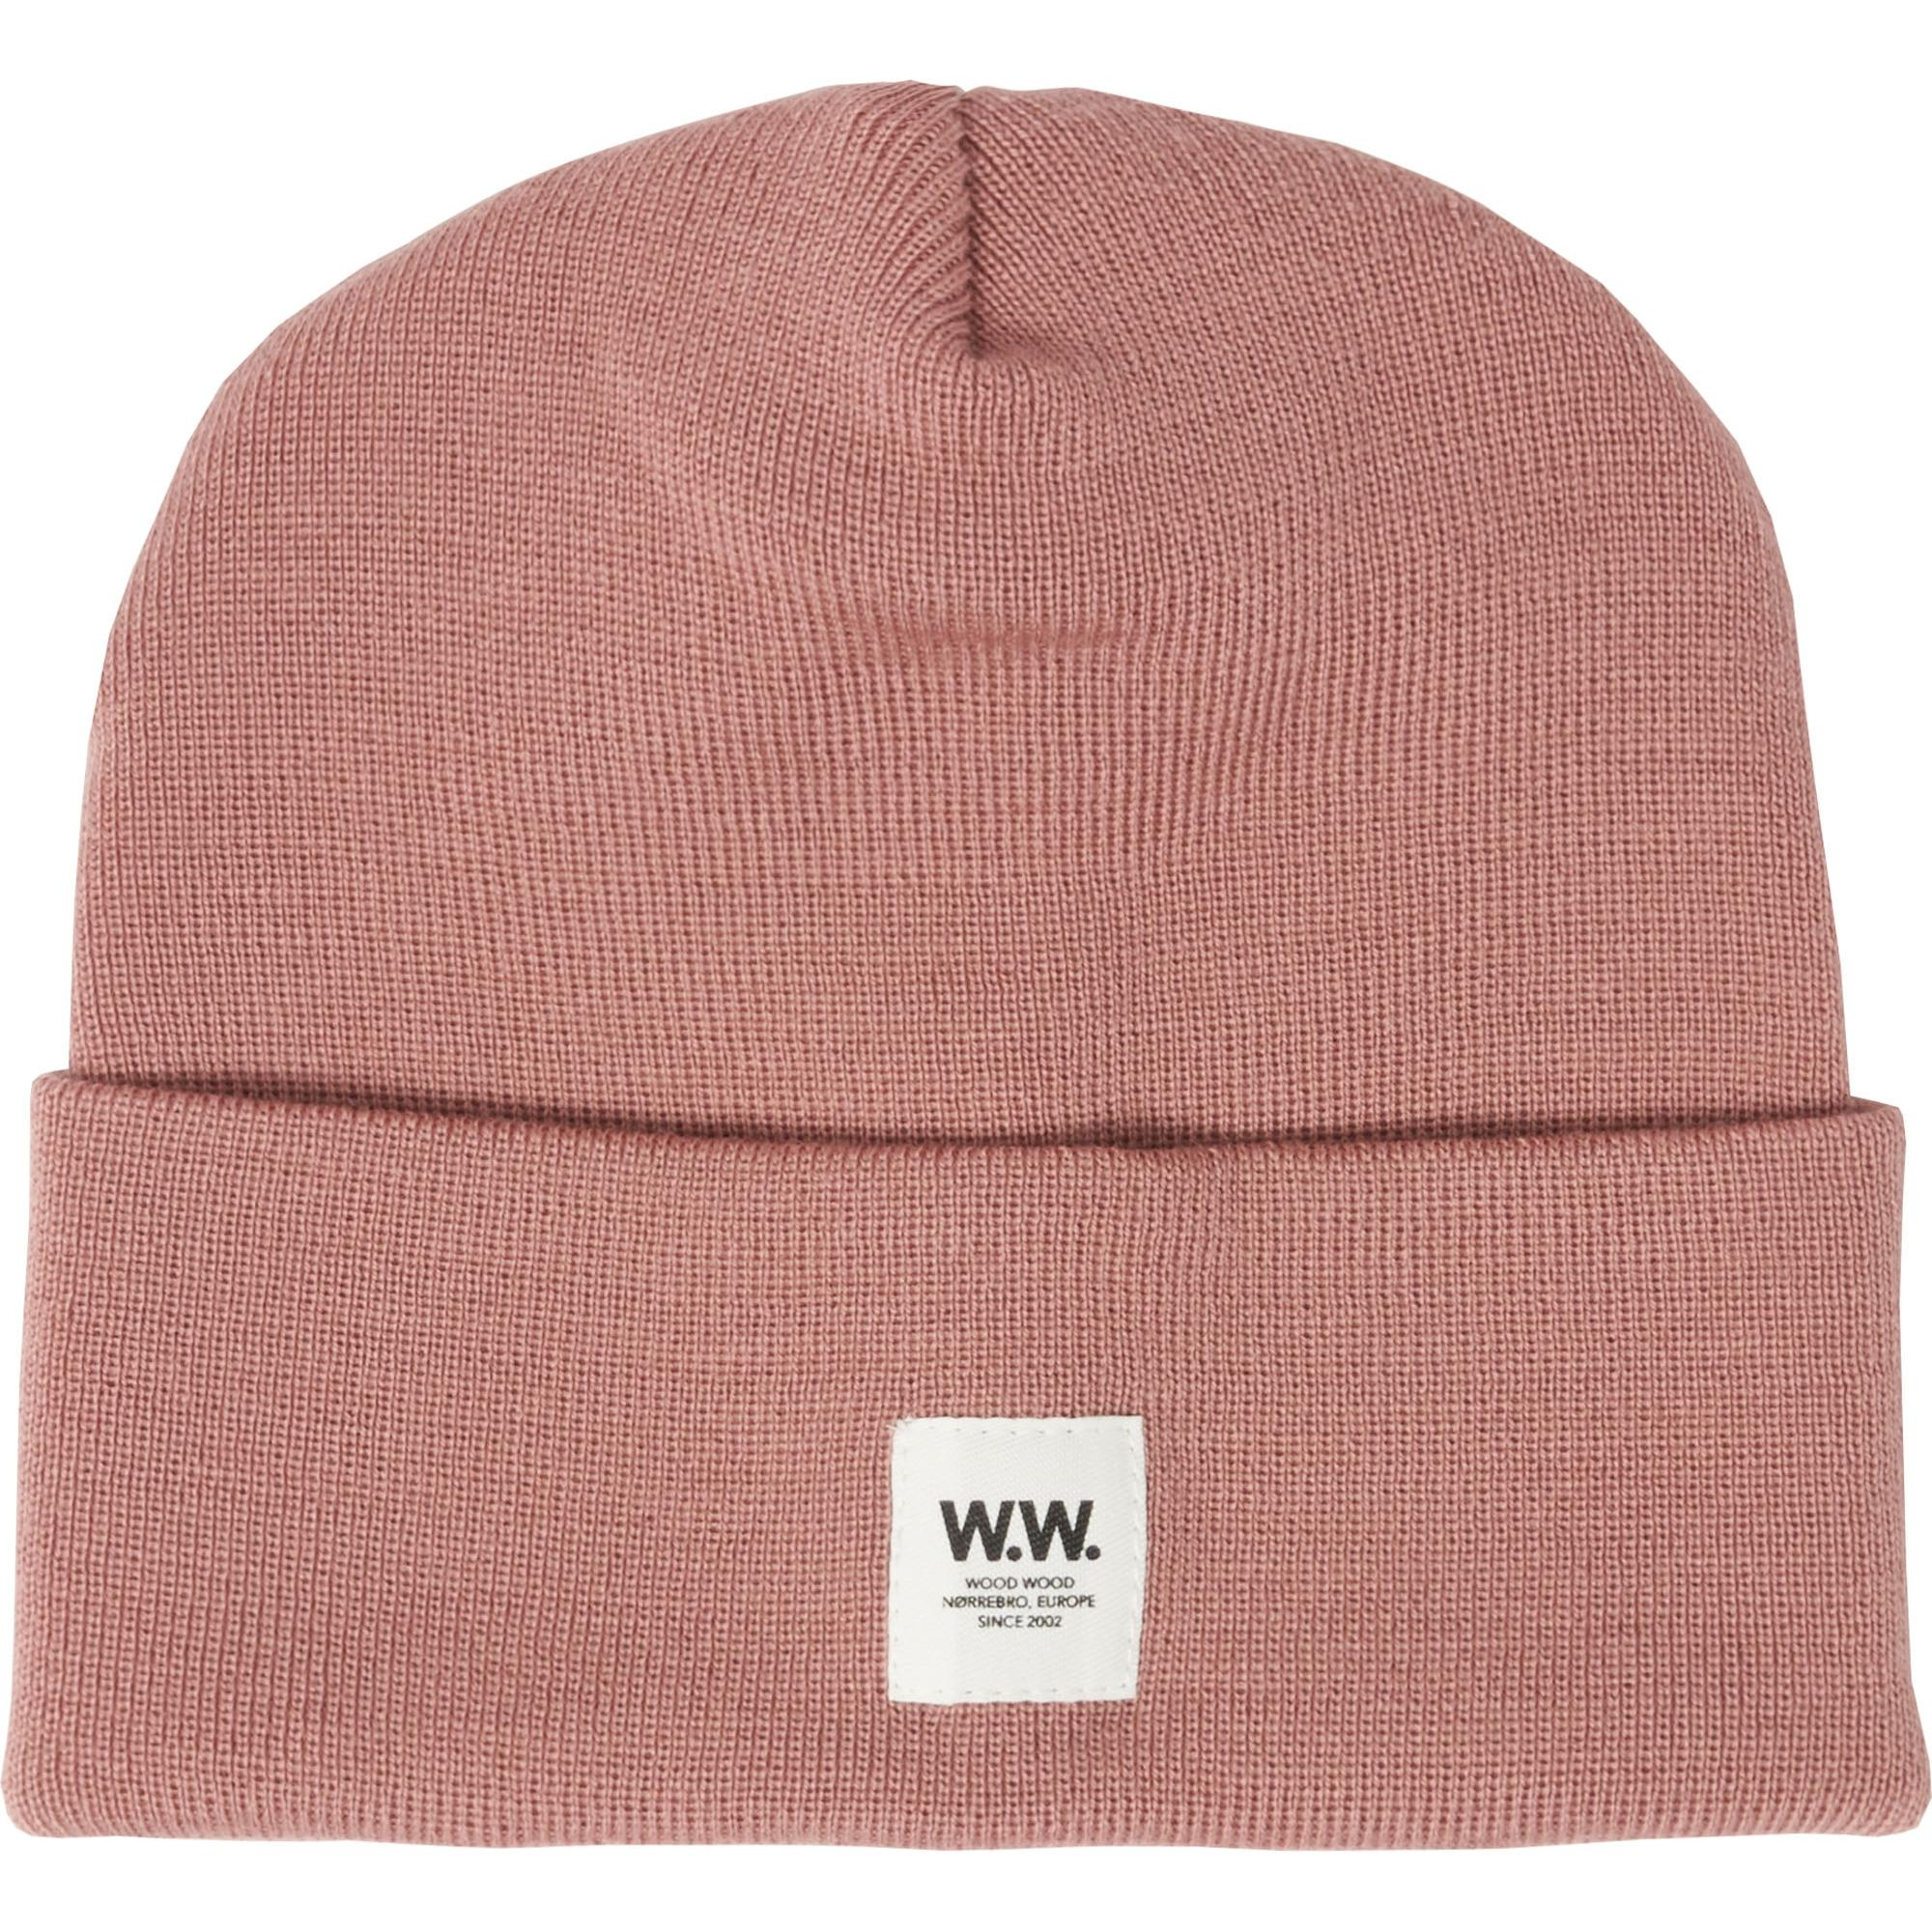 3cad697750df7 WOOD WOOD Gerald Tall Beanie - Dark Rose in Pink for Men - Lyst